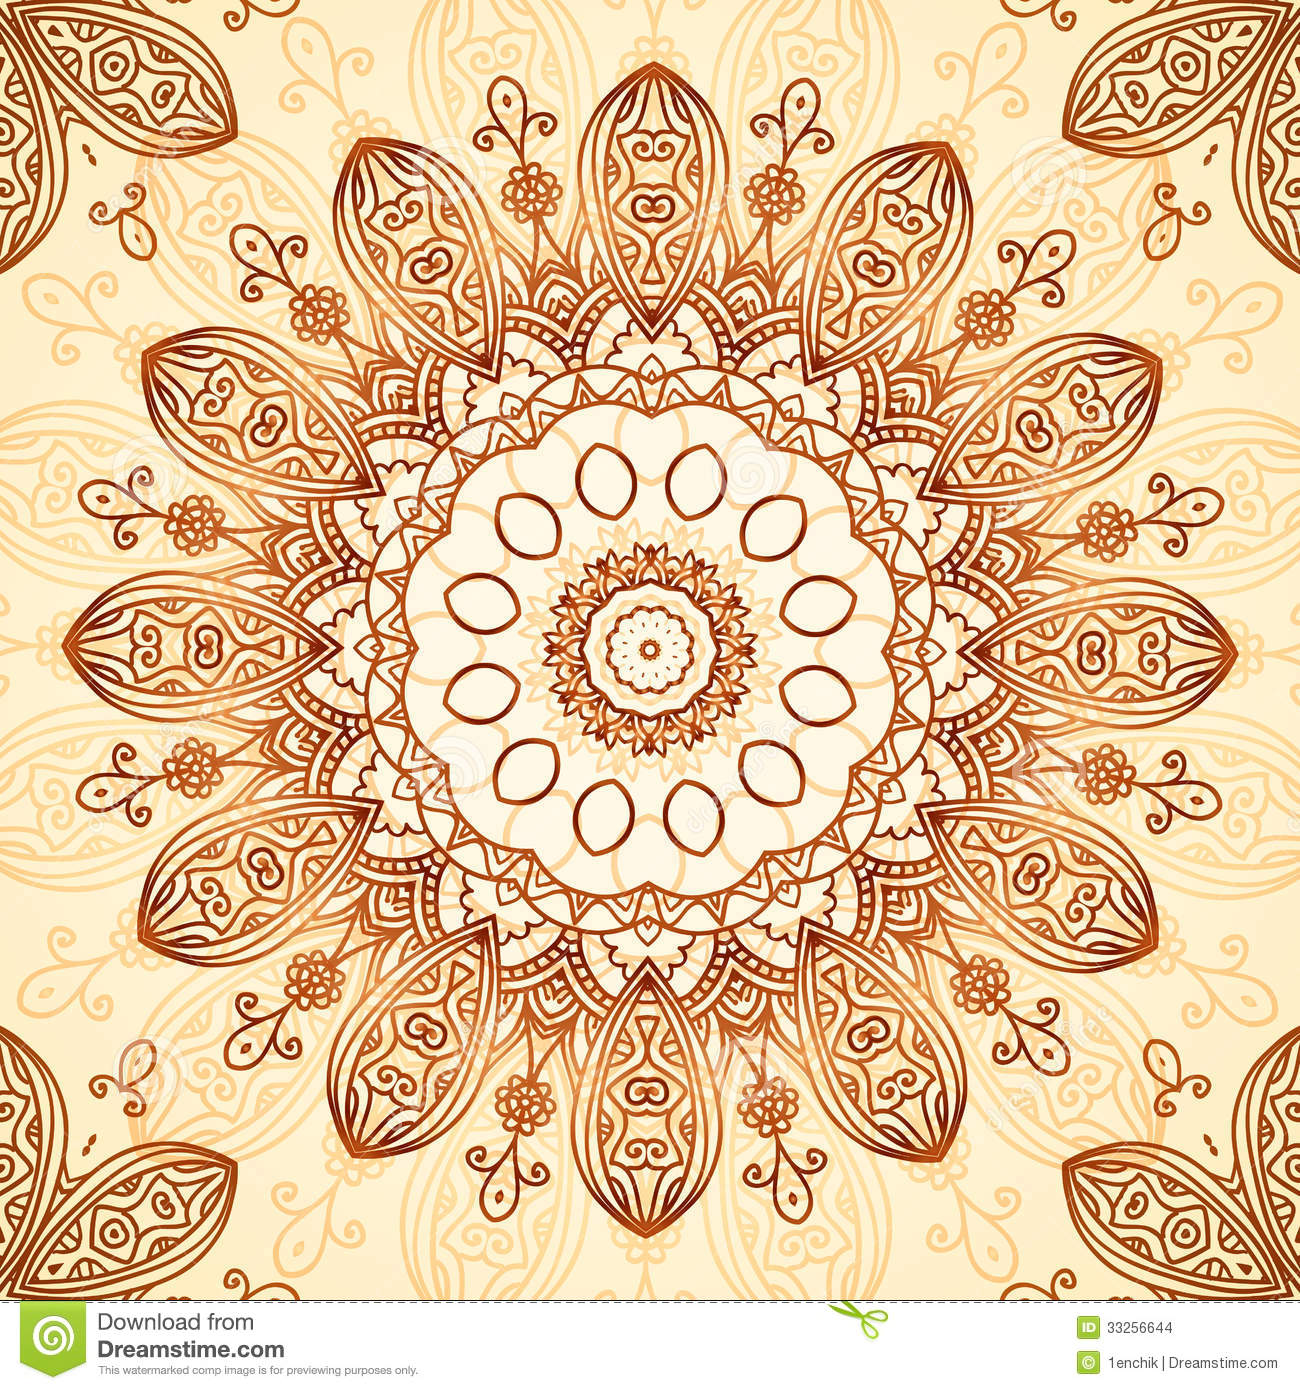 Ornate vintage vector background in mehndi style royalty free stock - Royalty Free Stock Photo Download Ornate Vintage Circle Pattern In Mehndi Style